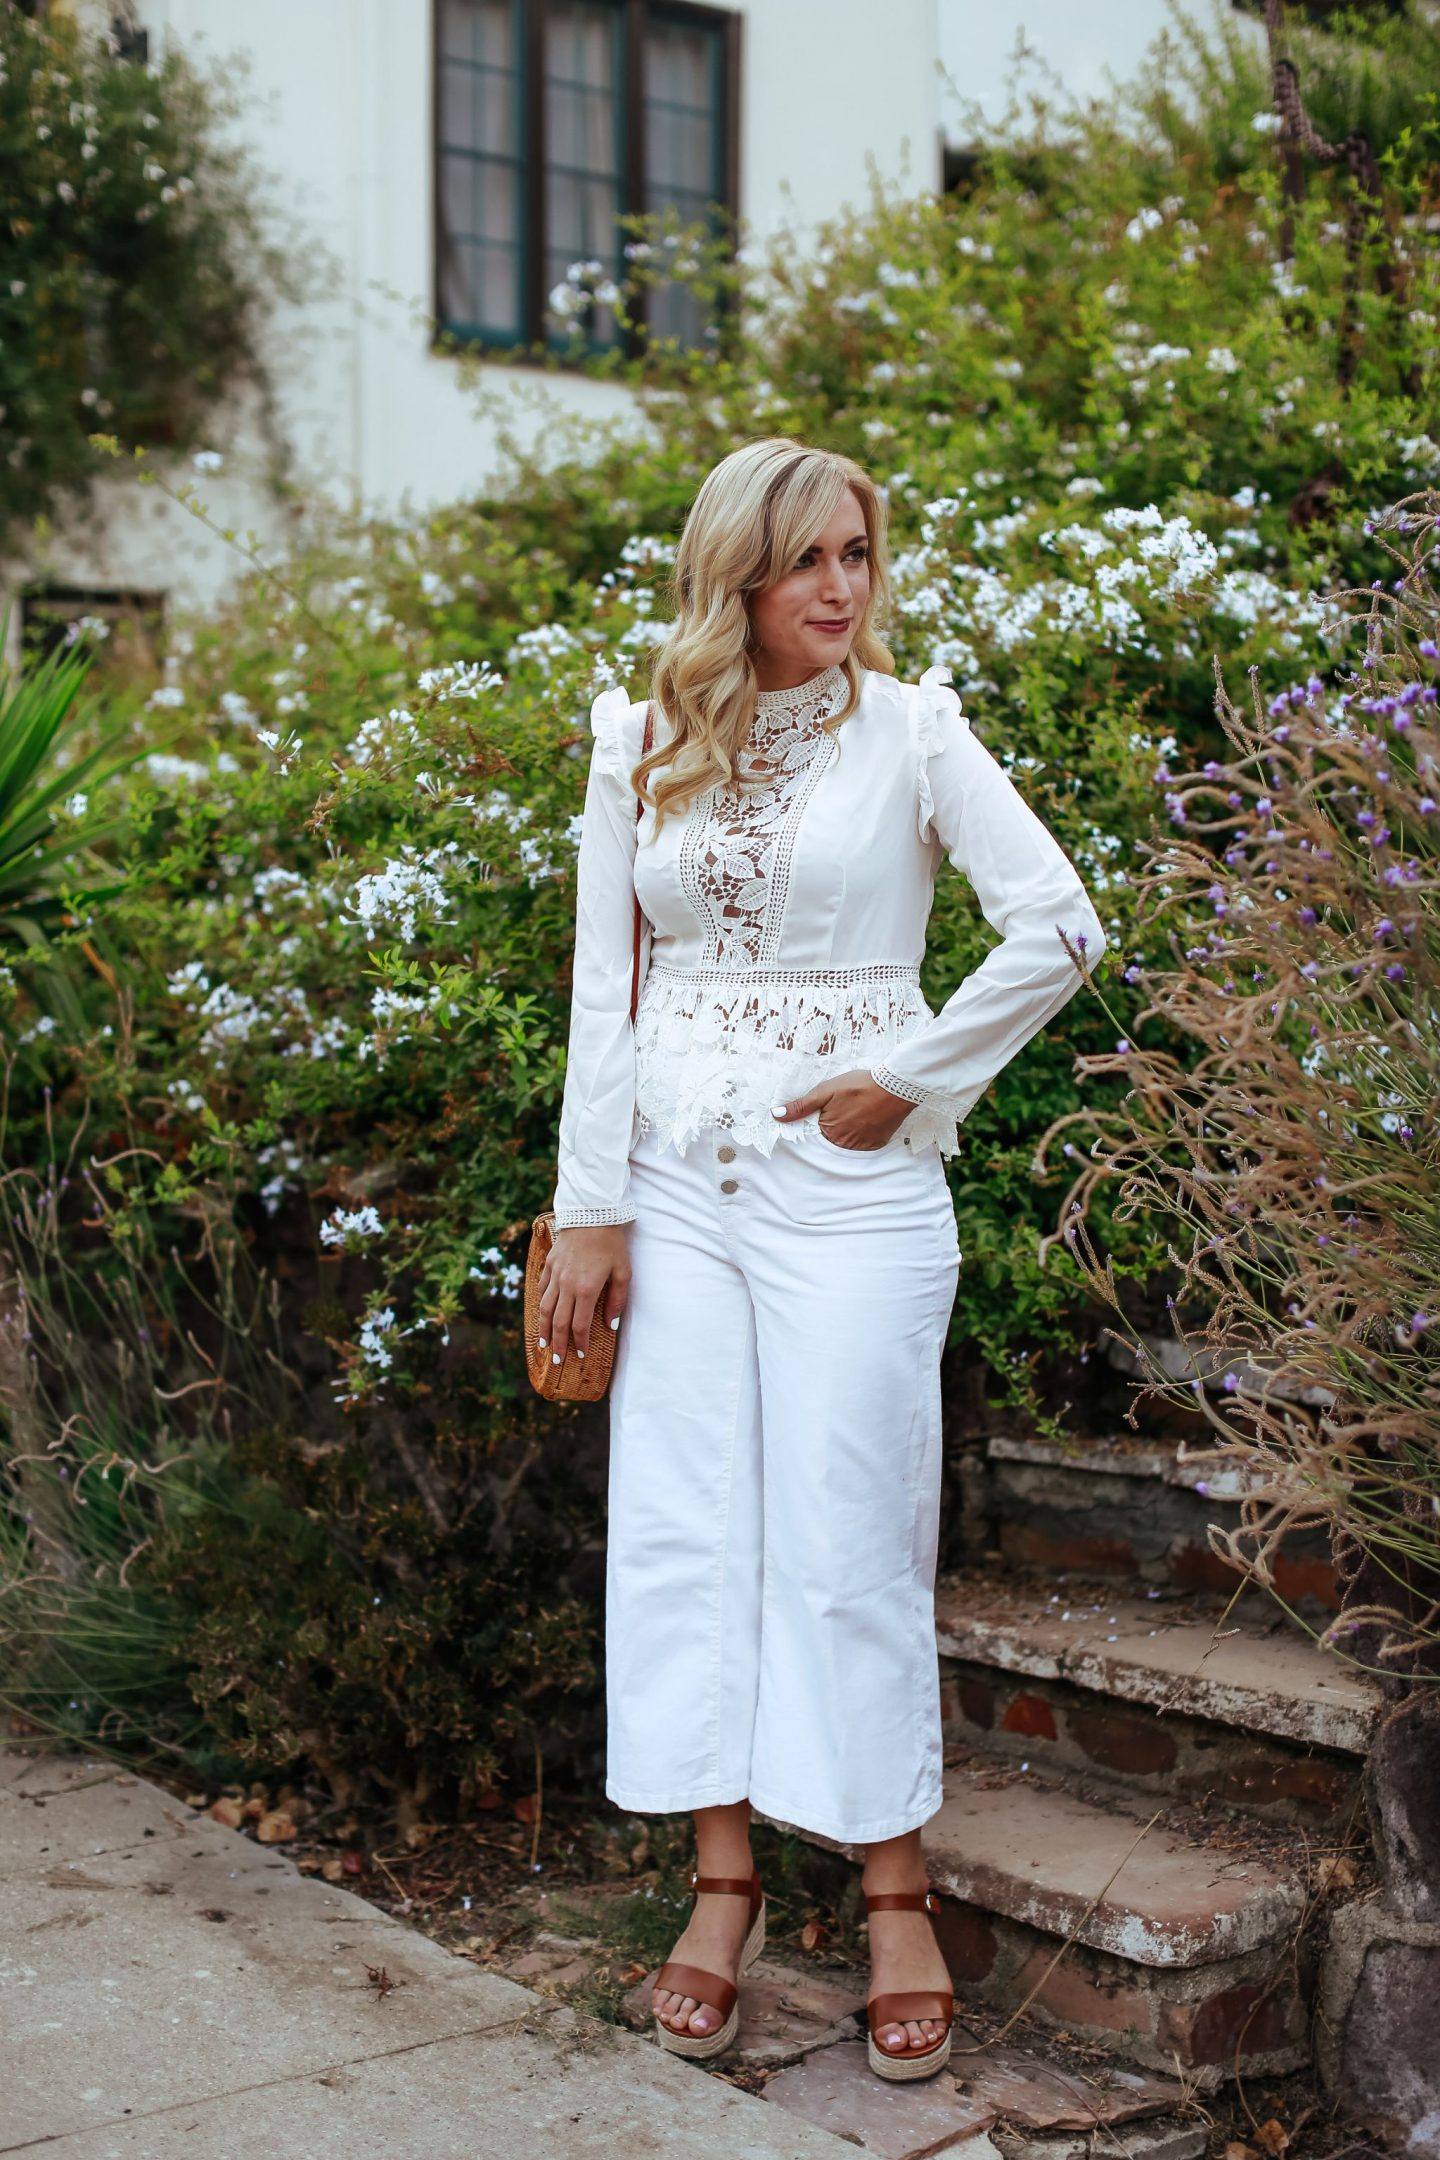 legallee blonde white denim culottes and white top what to wear with white jeans